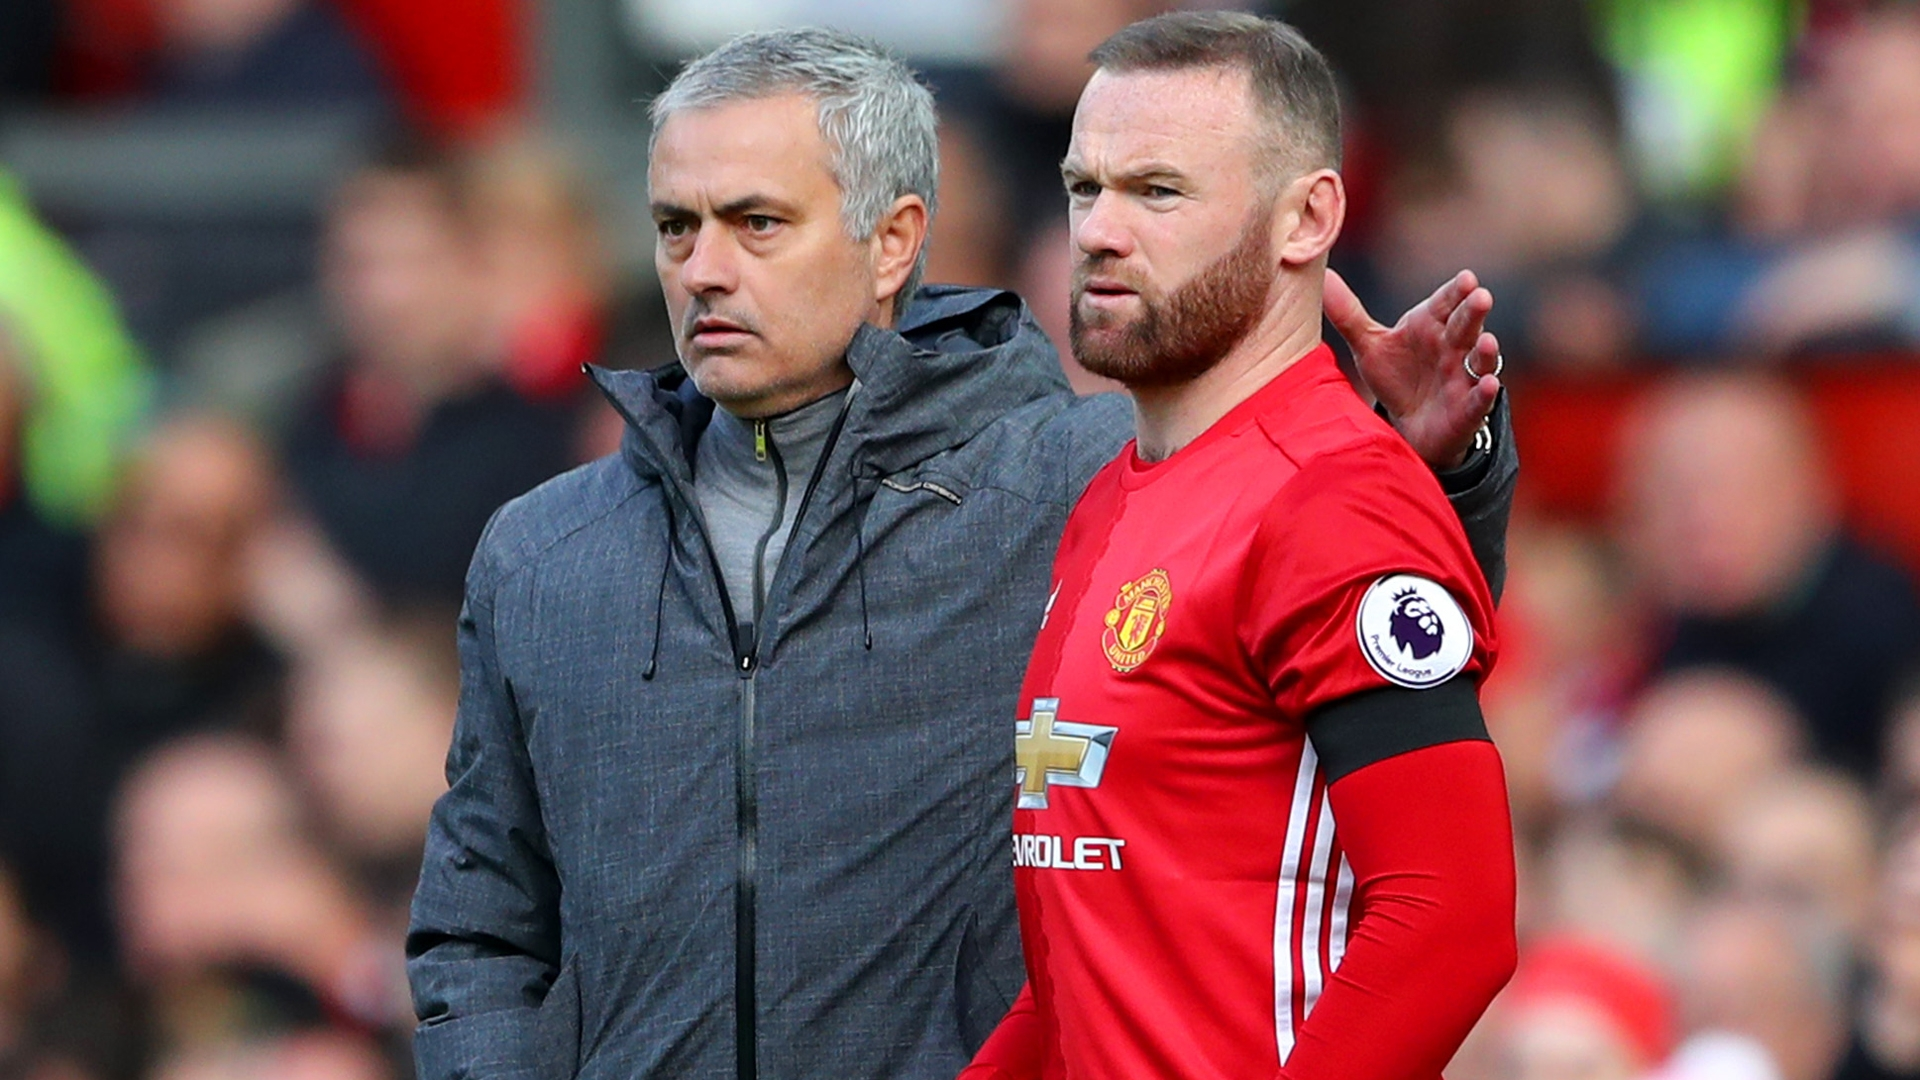 Wayne Rooney hasn't been missing from Man. Utd.'s training sessions for long, but manager Jose Mourinho says he already feels the player's absence.